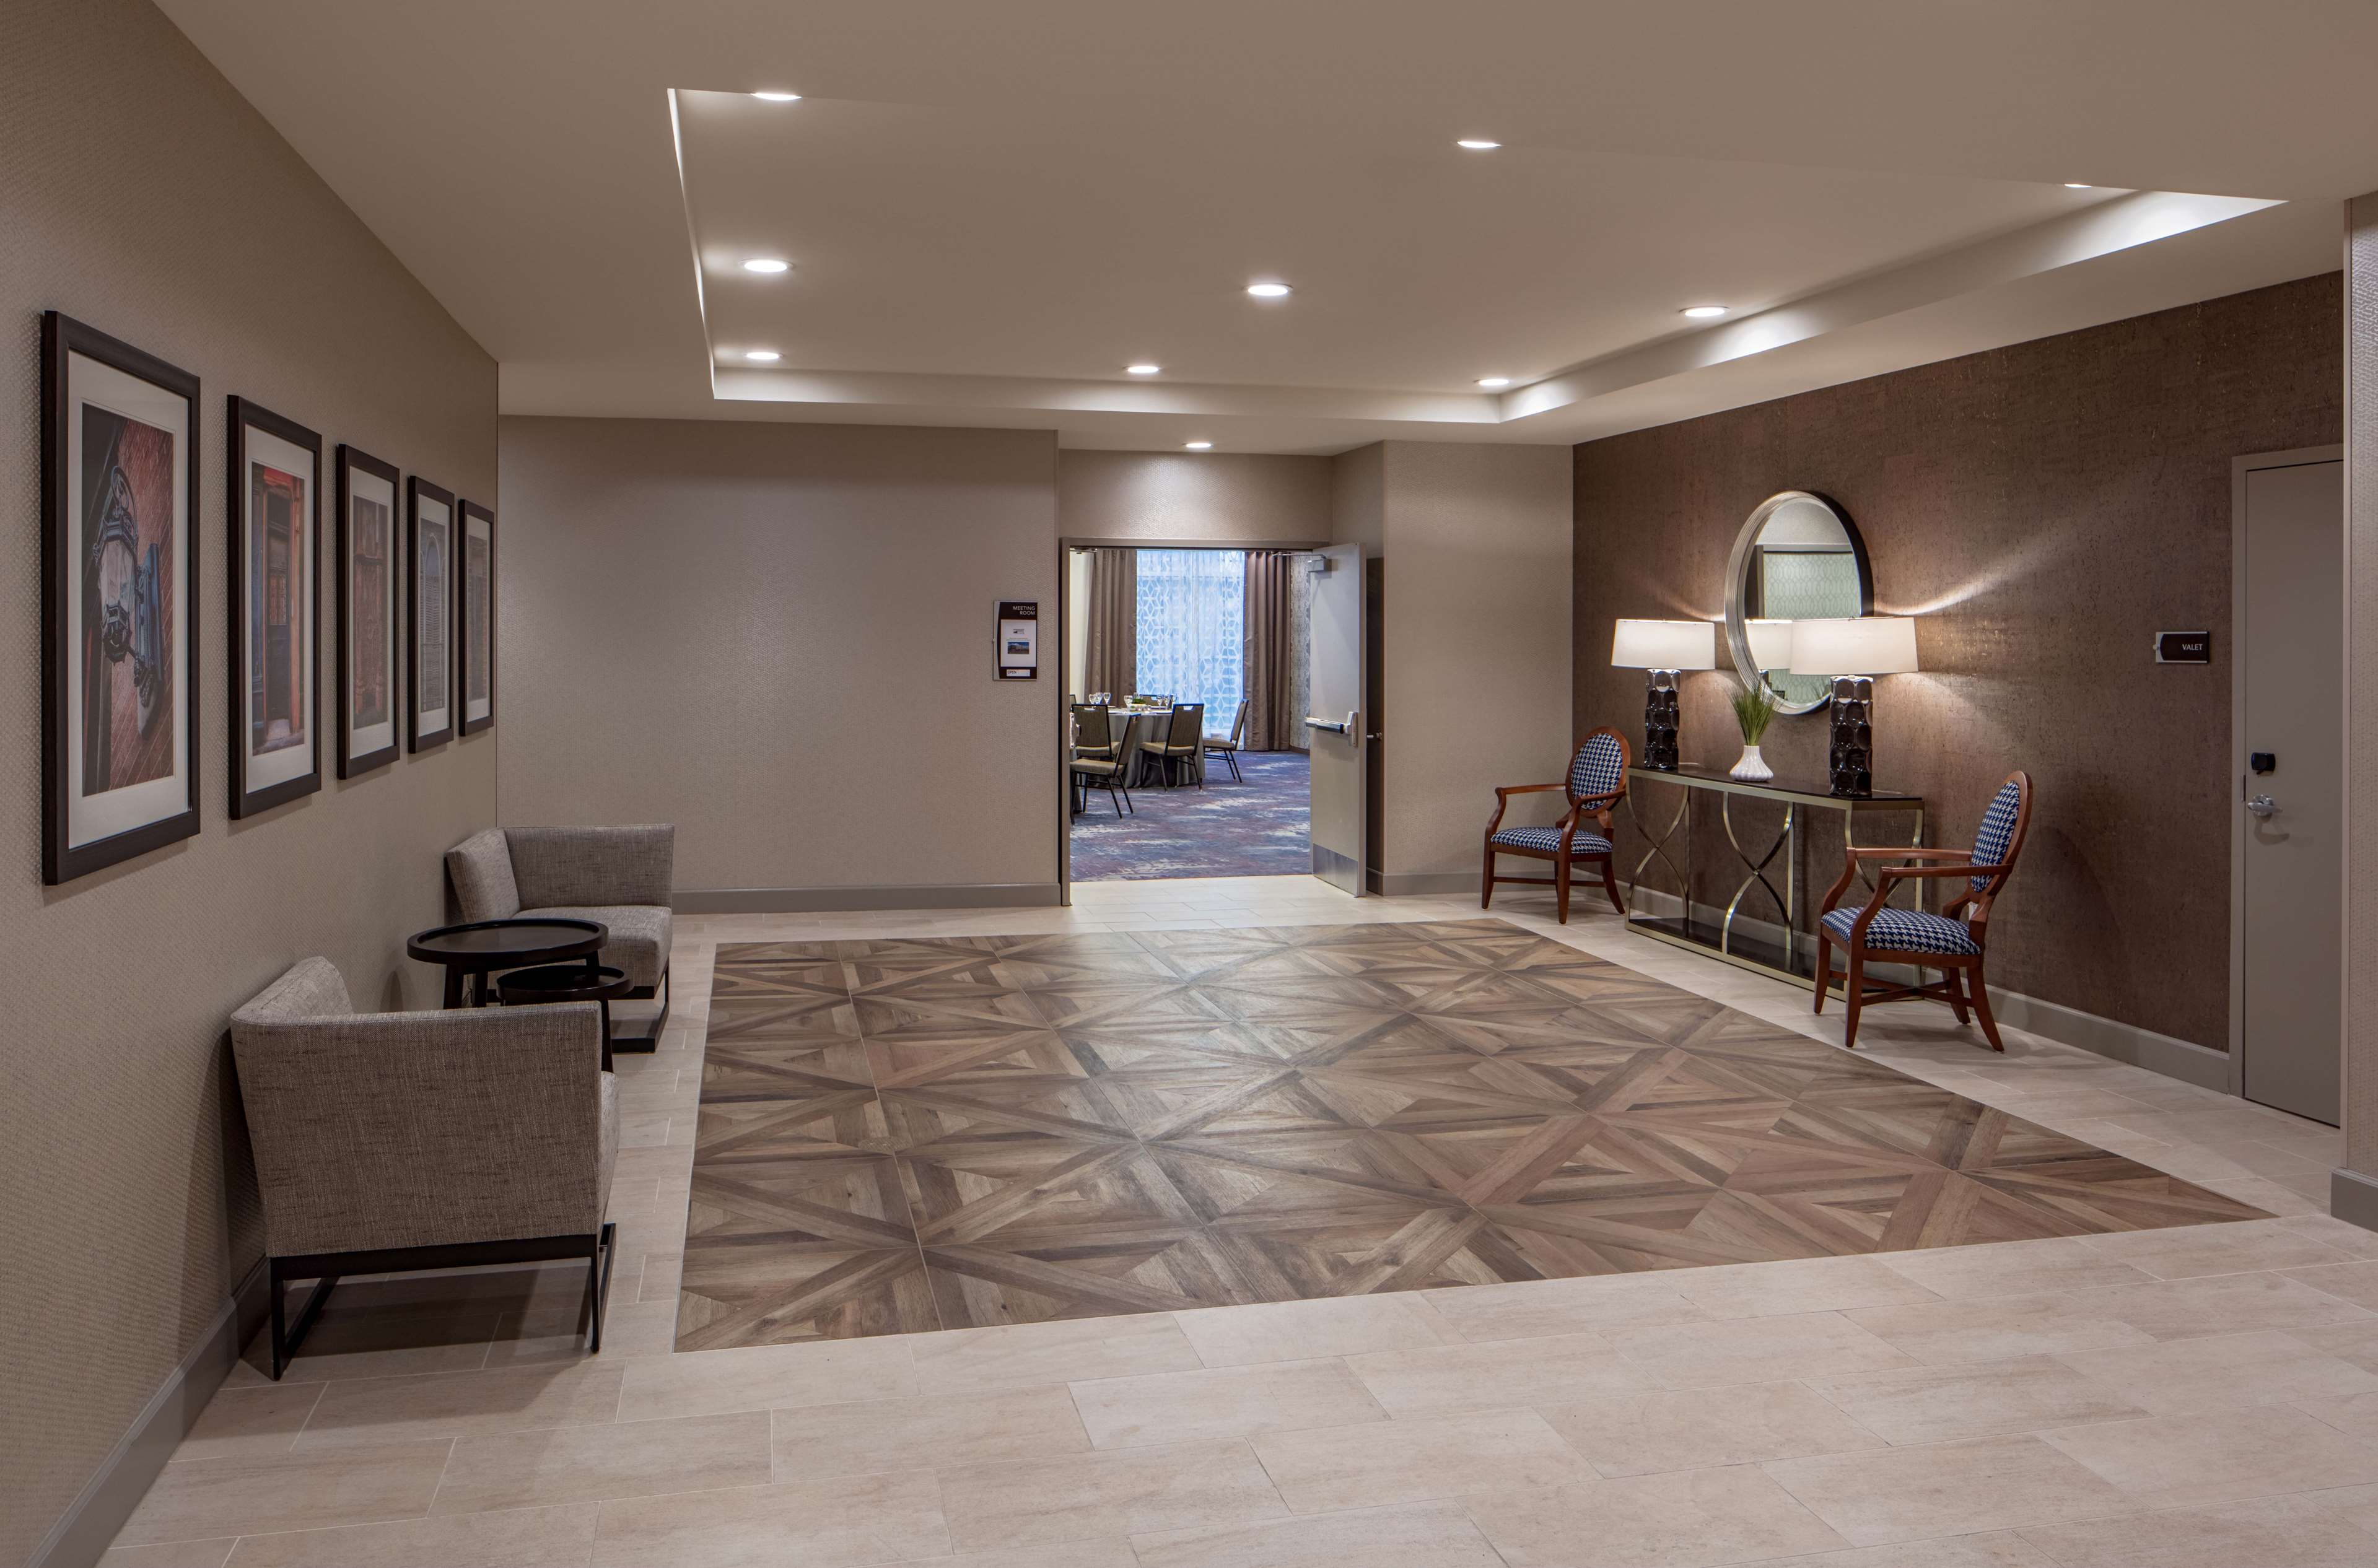 Homewood Suites by Hilton New Orleans French Quarter image 51